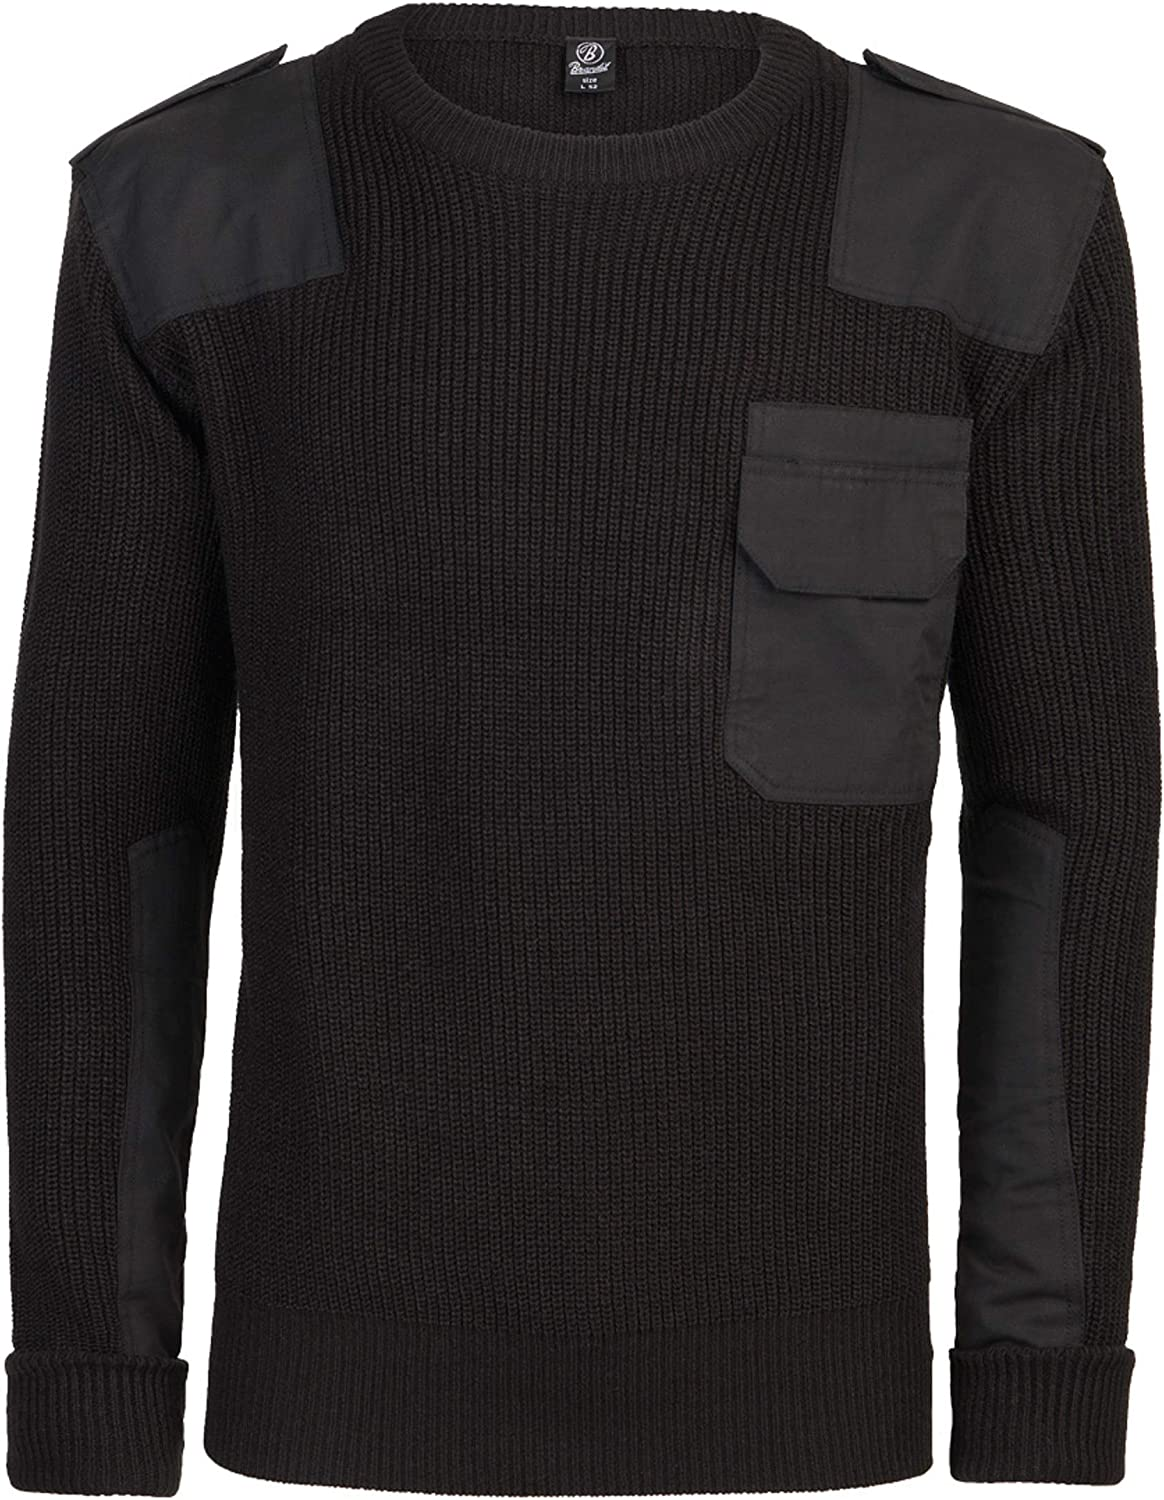 Brandit Mens Bw-Pullover Sweater